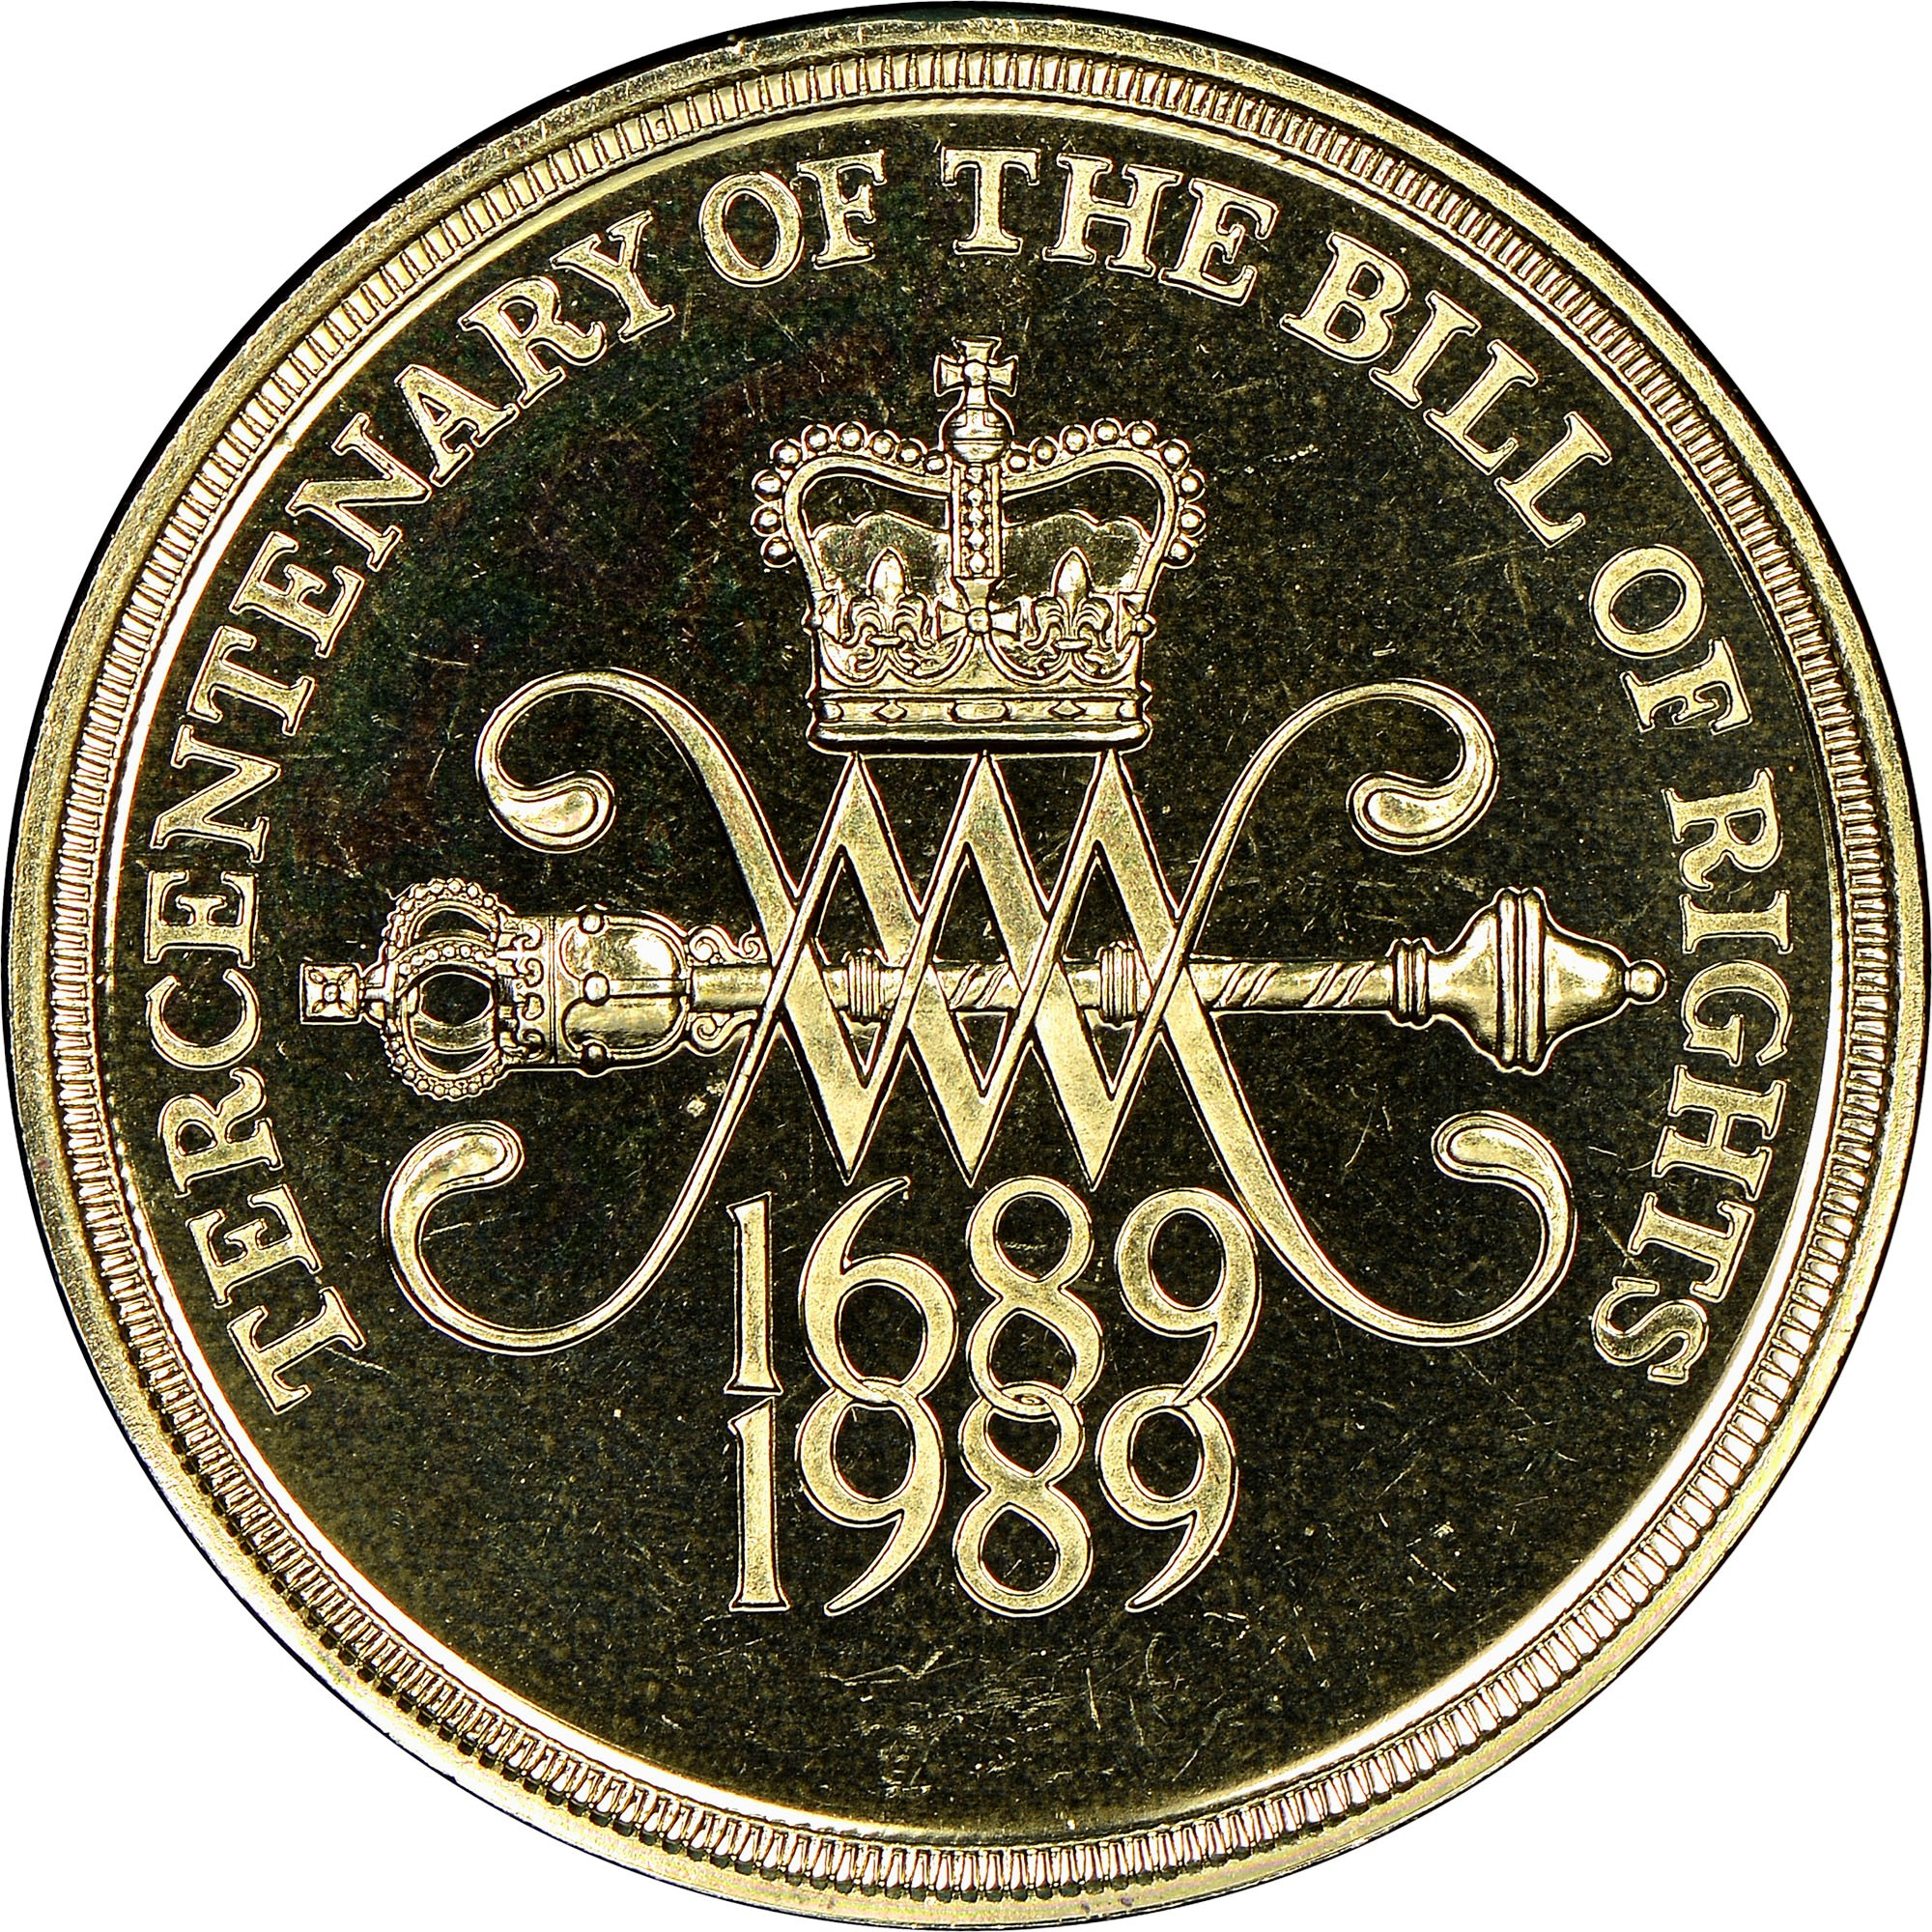 Great Britain 2 Pounds reverse